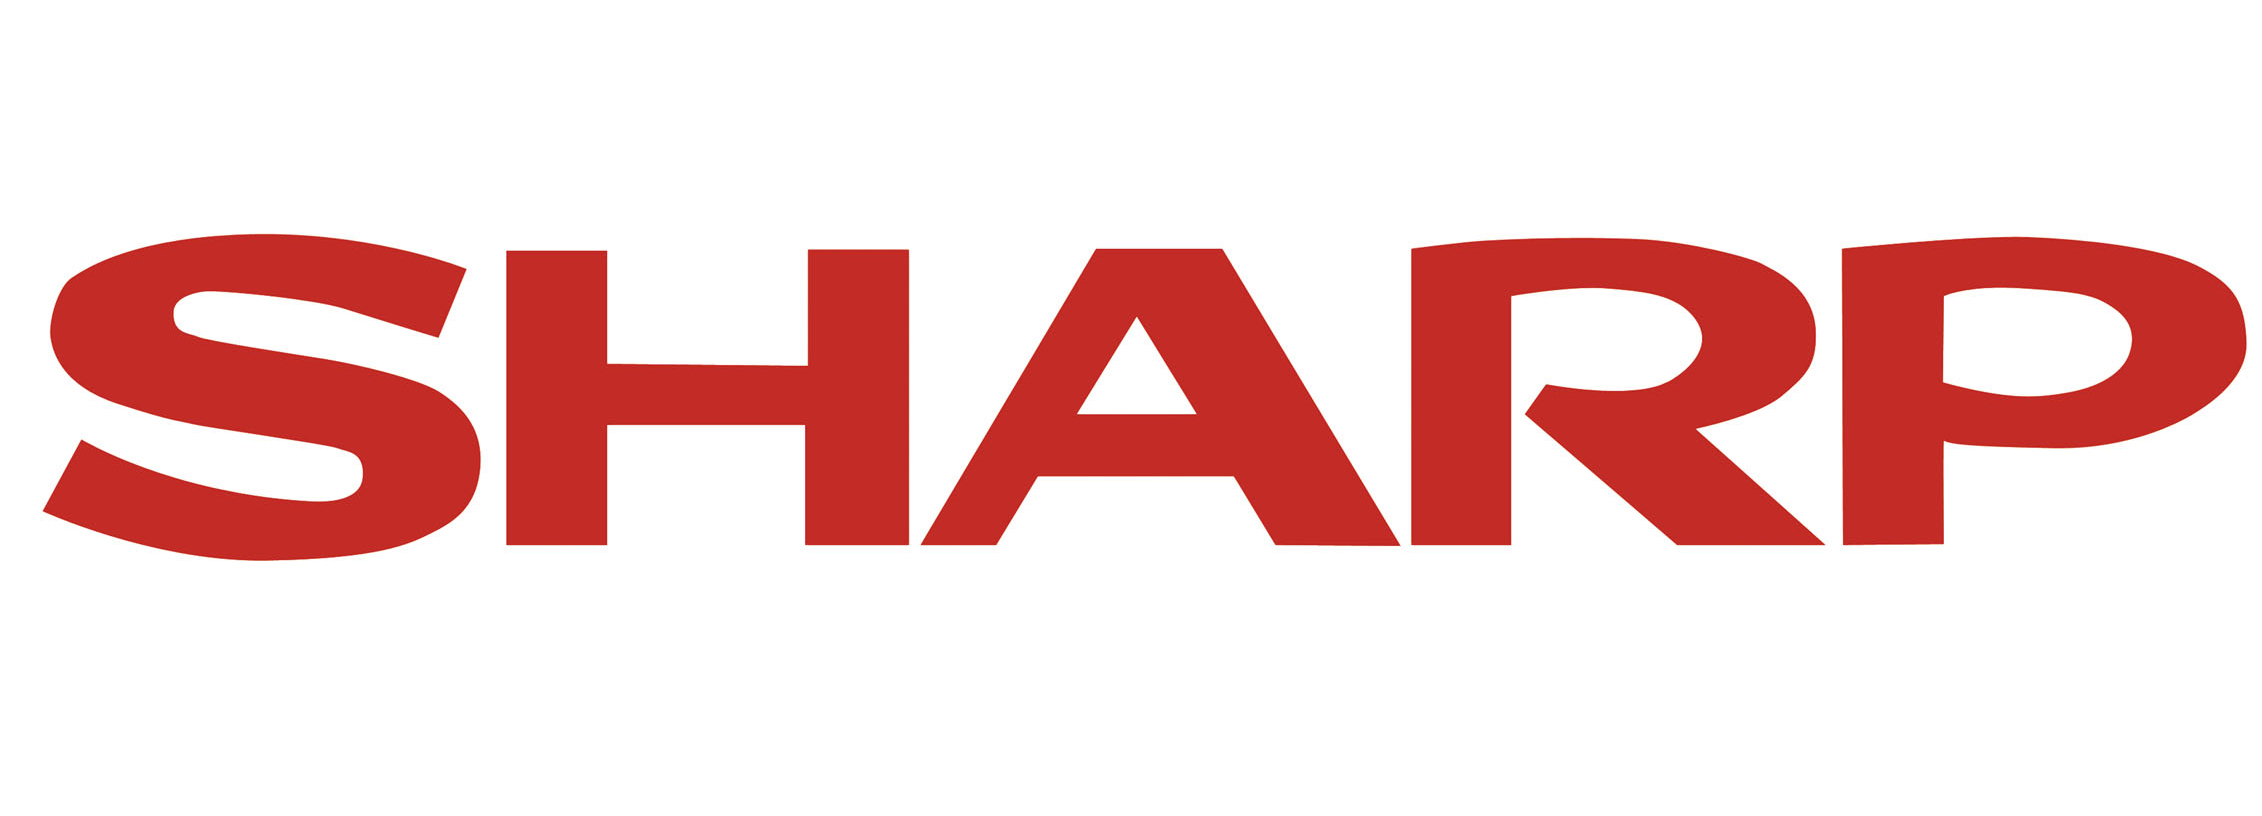 sharp-logo3.jpg